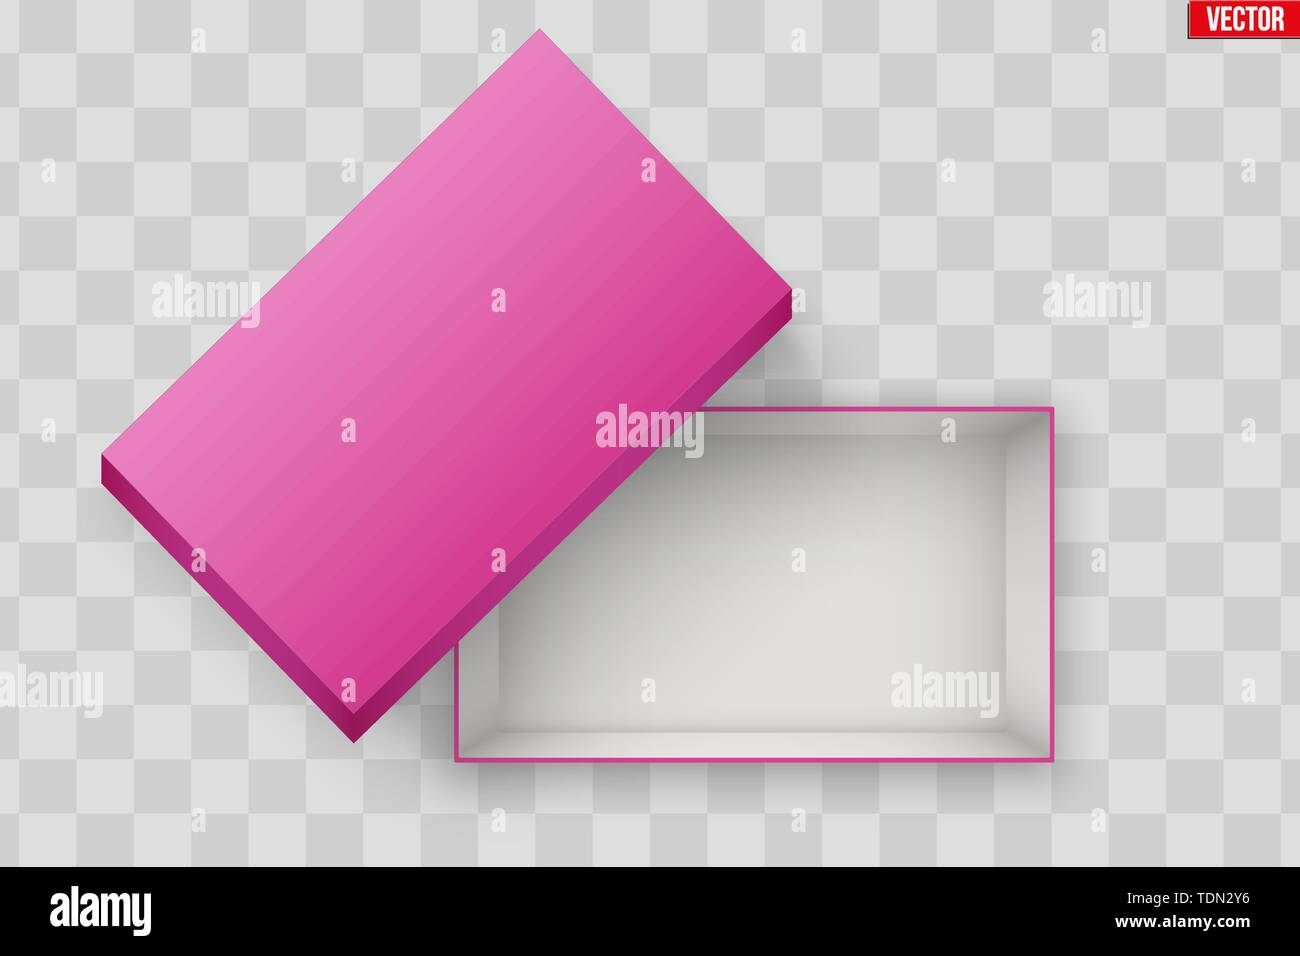 Blank of Opened Pink Shoes Box With Lid. Mockup Rectangle Paper box container. Vector Illustration isolated on transparent background. - Stock Image